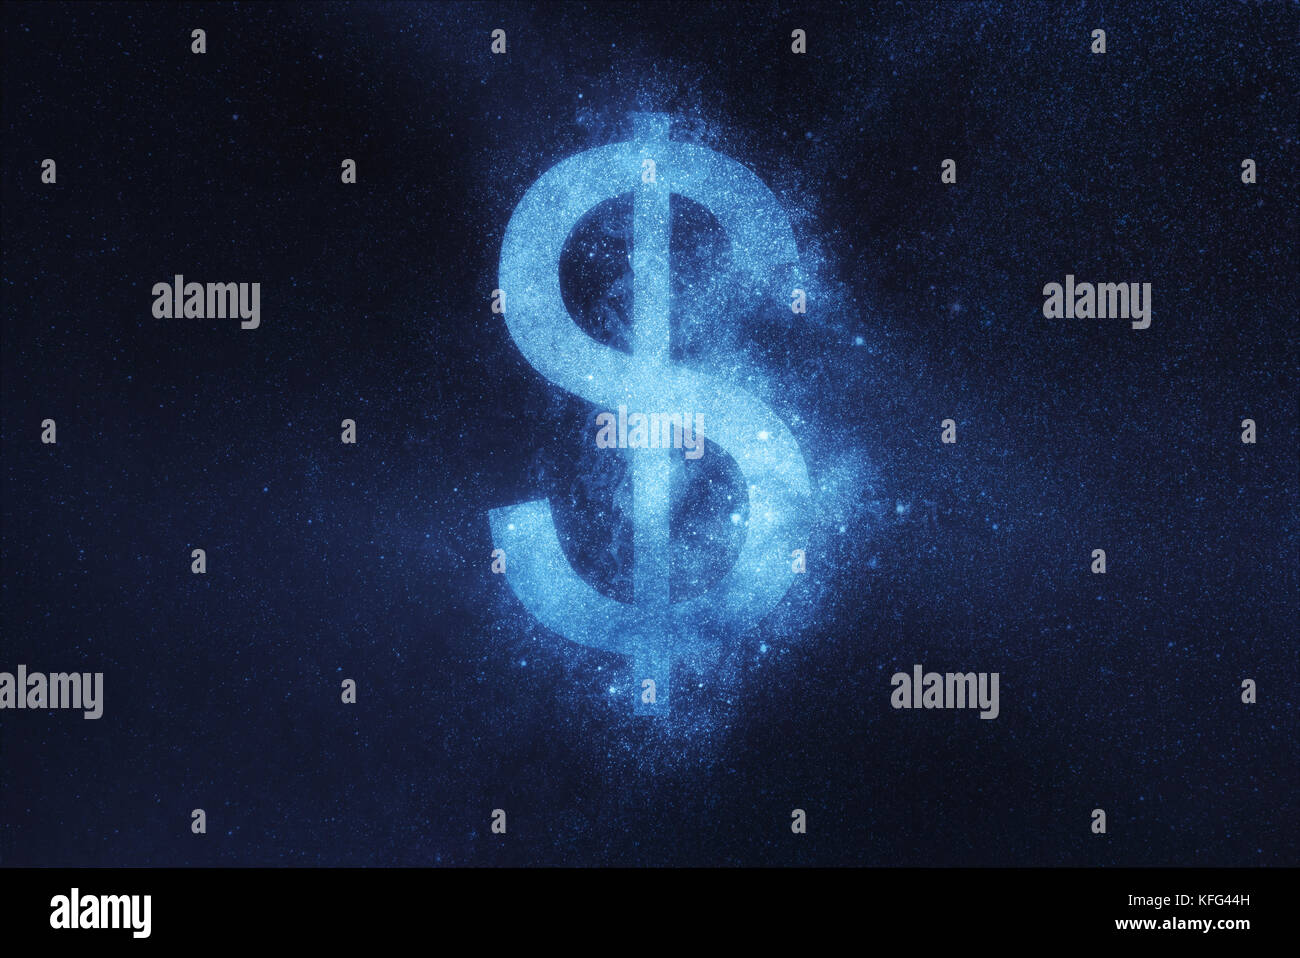 Dollar sign, Dollar Symbol. Abstract night sky background - Stock Image